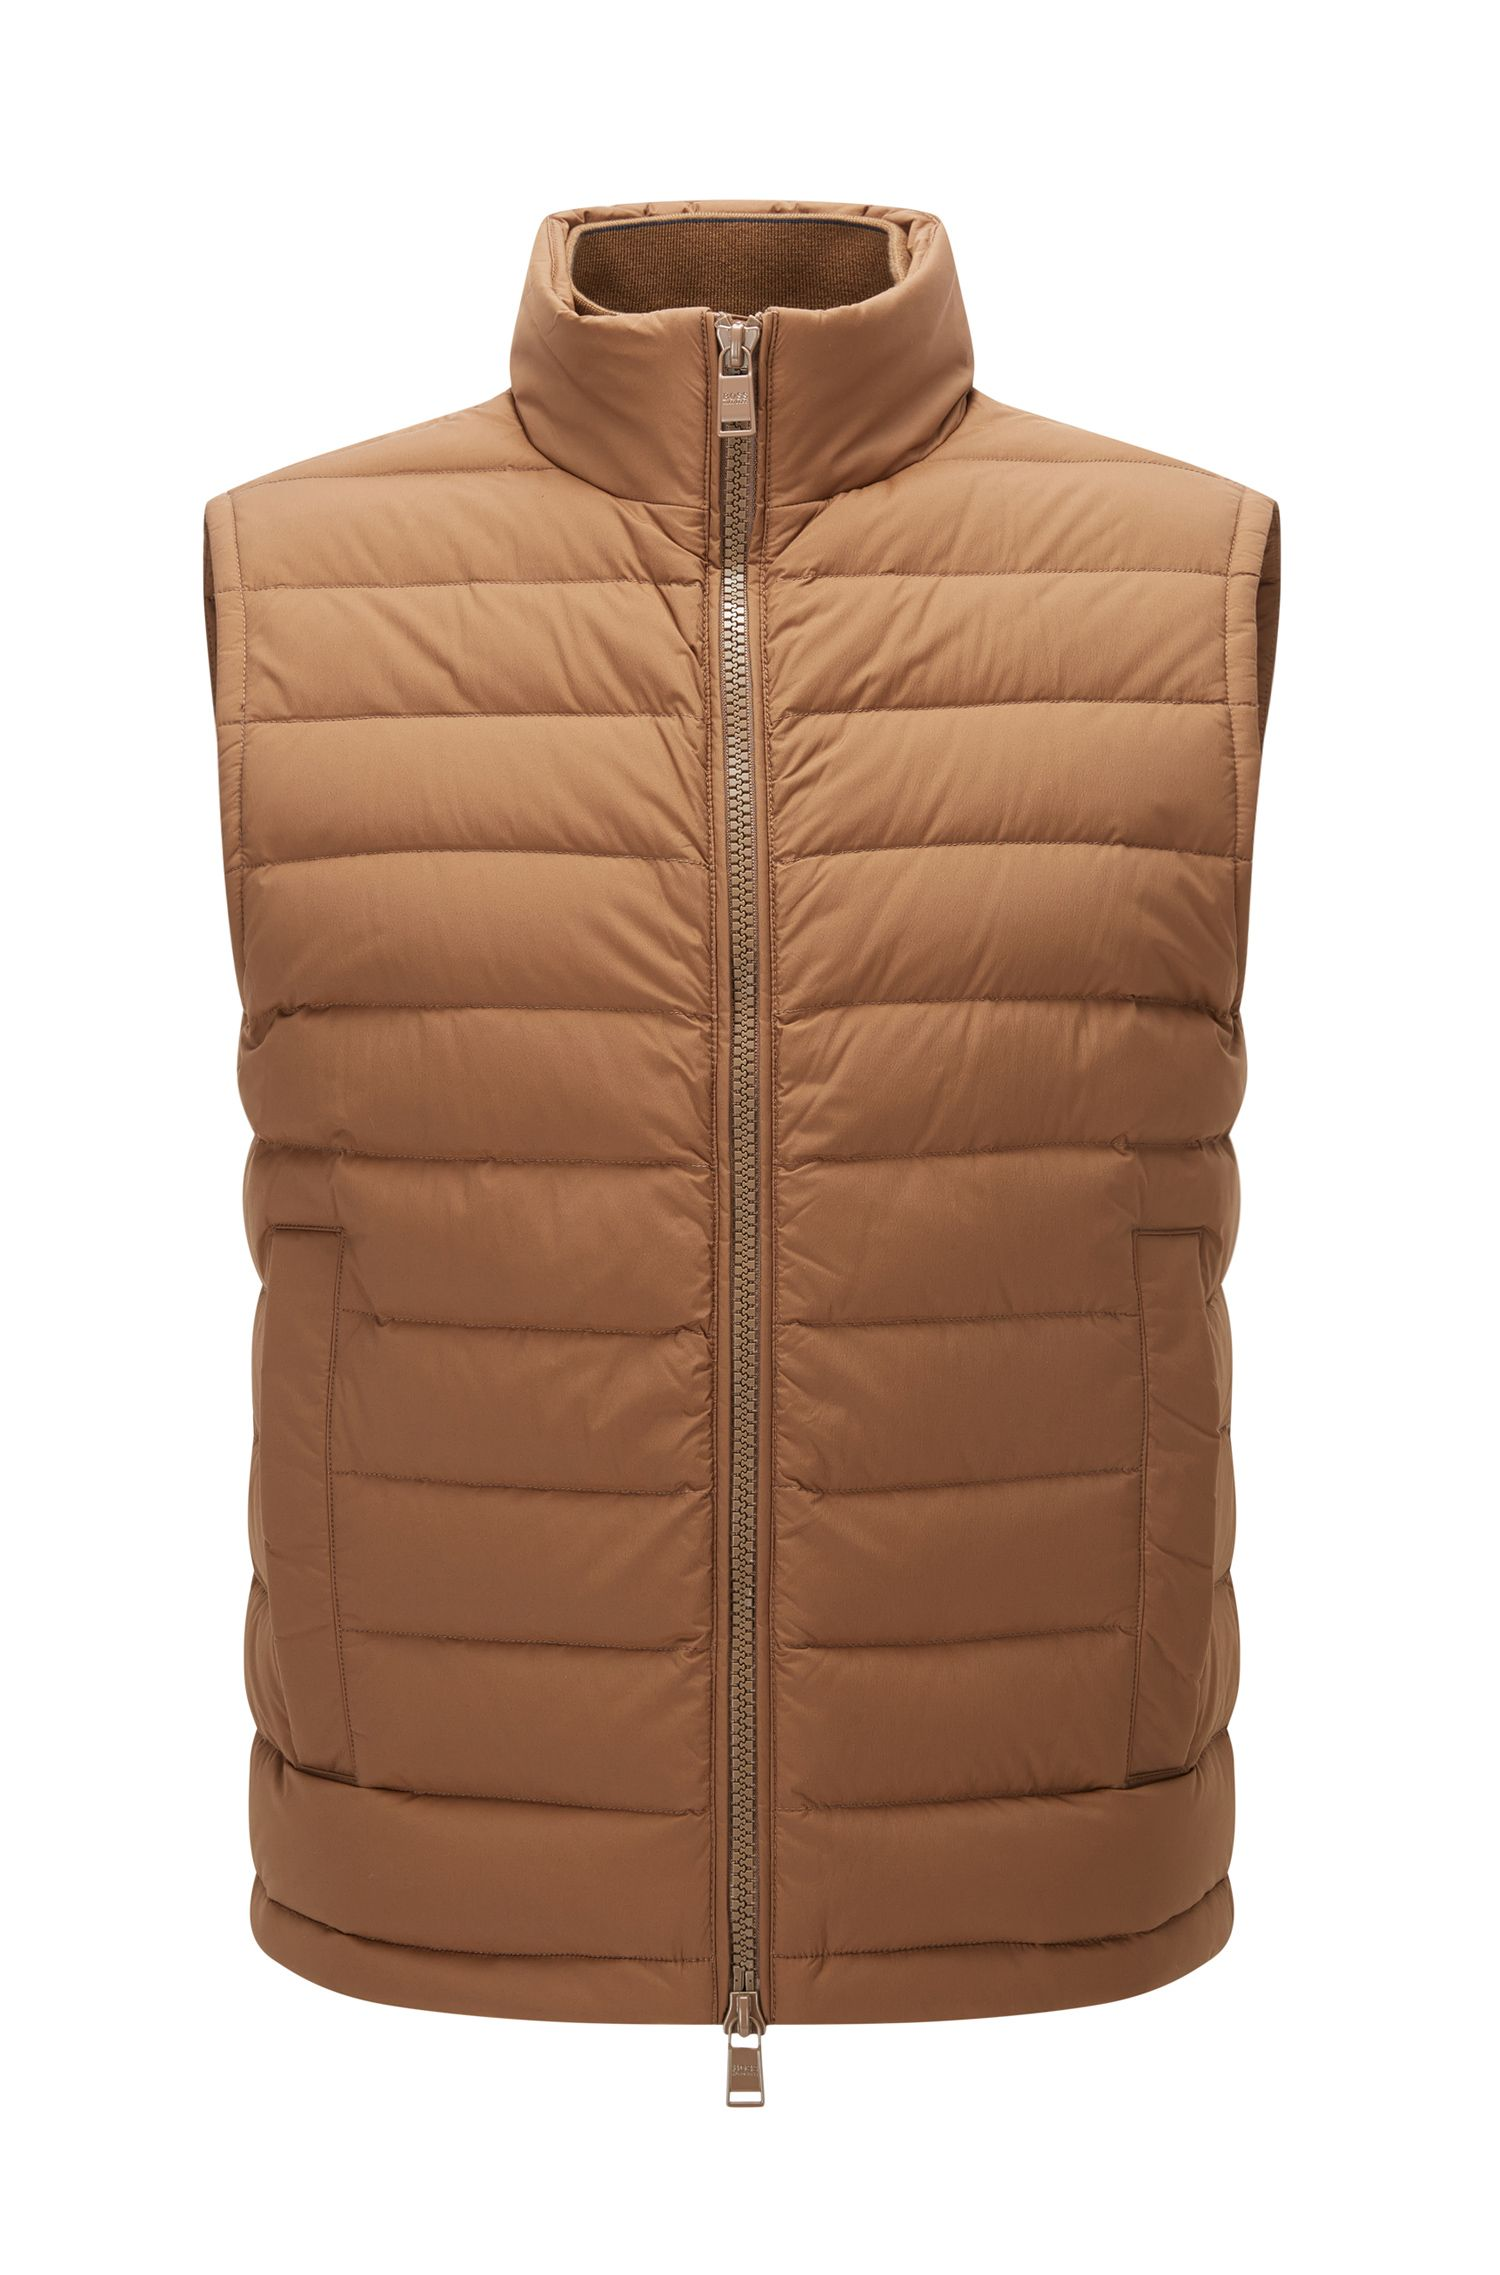 Gilet regular fit in tessuto elastico idrorepellente